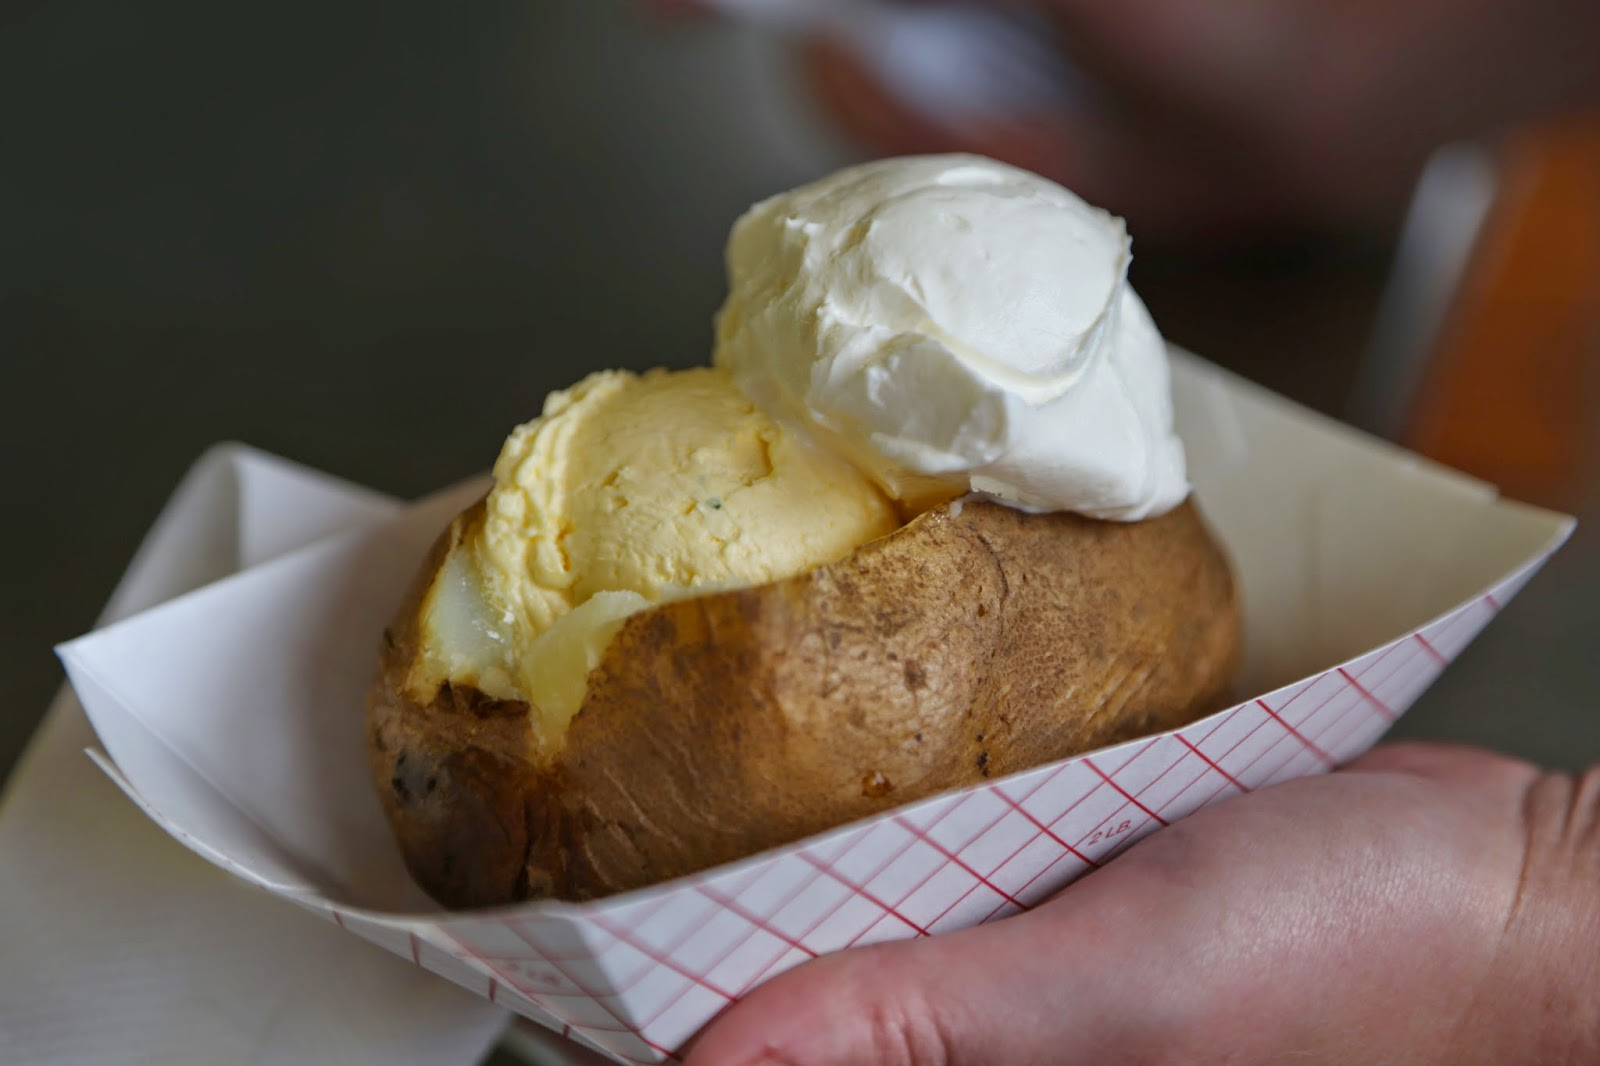 Baked potatoes with icecream scoops of cream cheese and whipped butter, Alaska State Fair